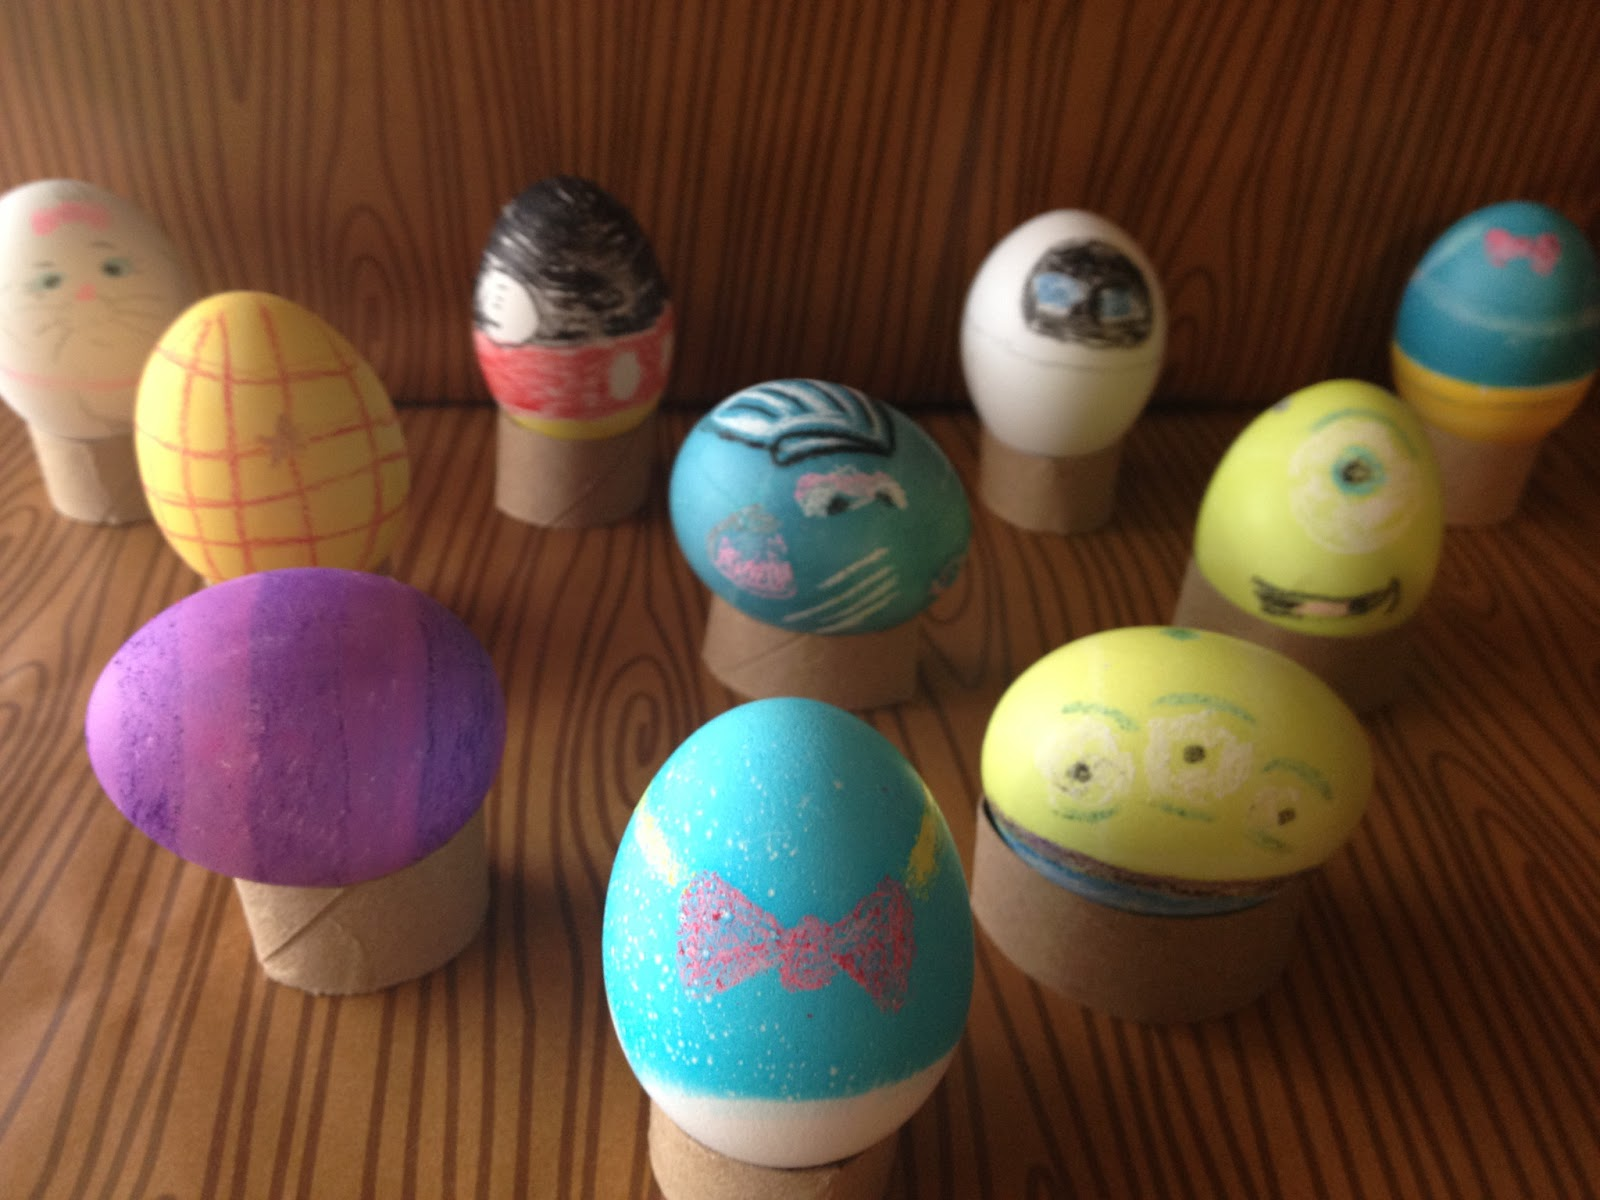 The Busy Broad Disney Easter Eggs